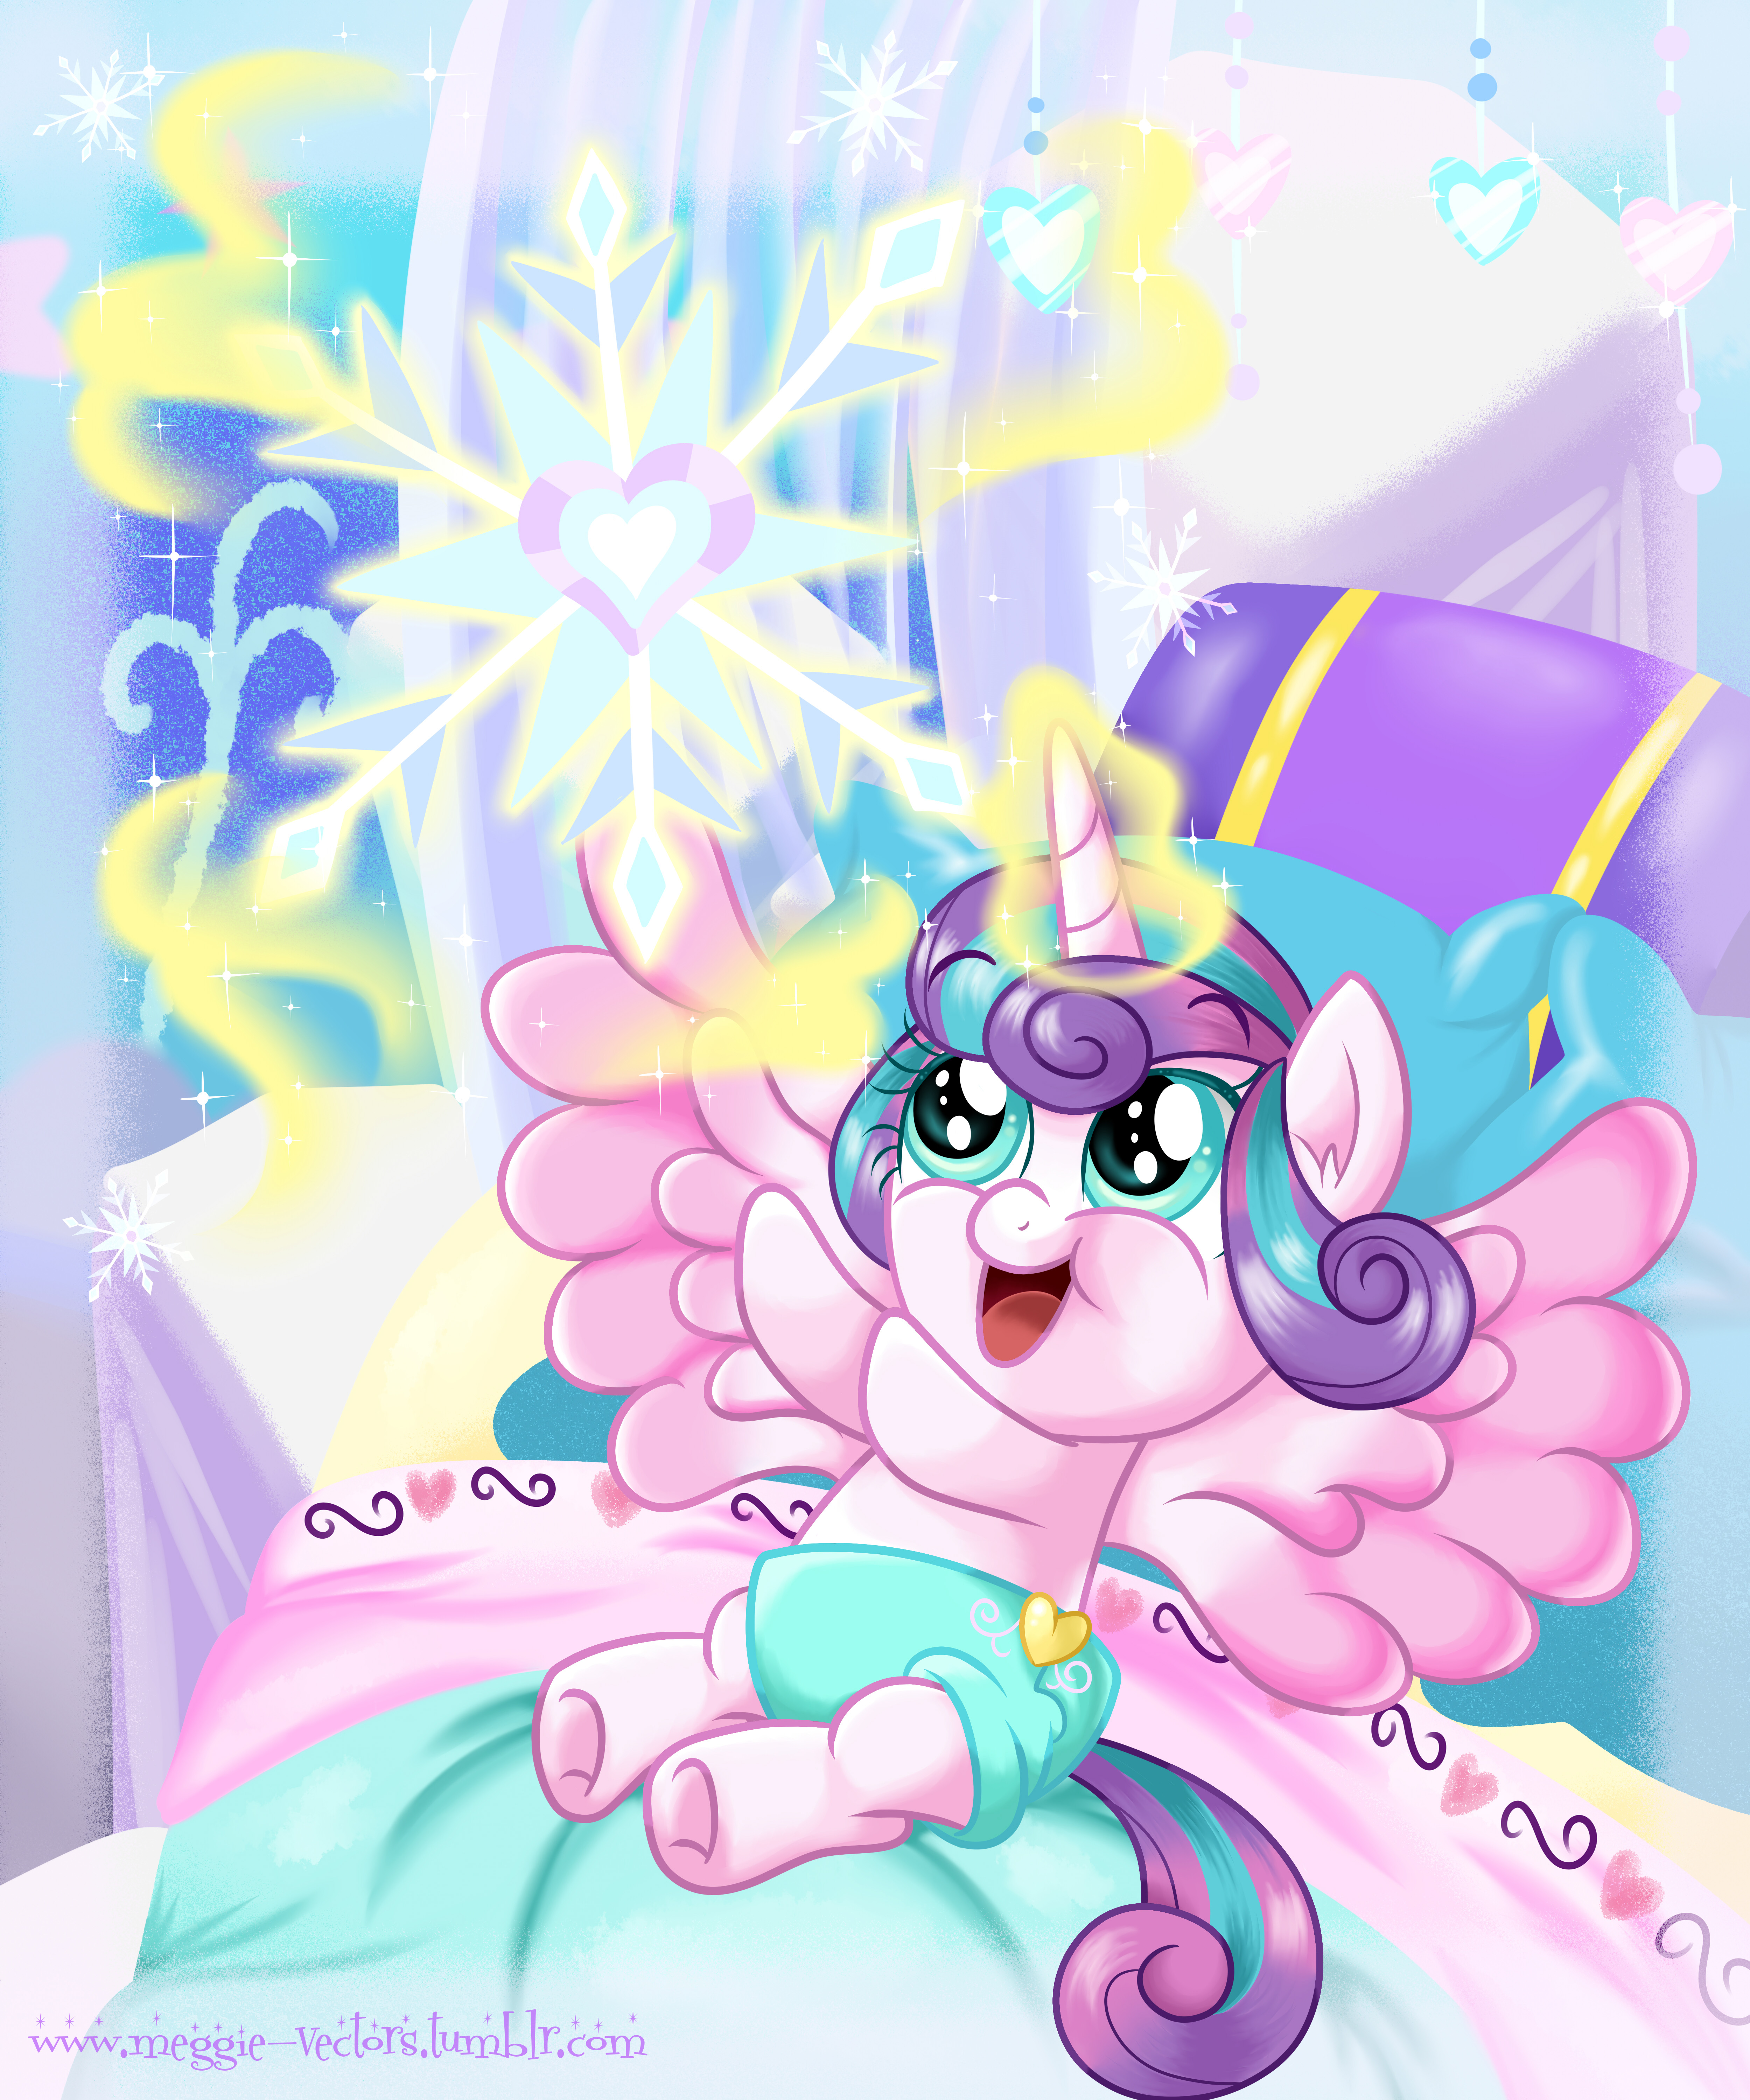 image She loves the filly seveners